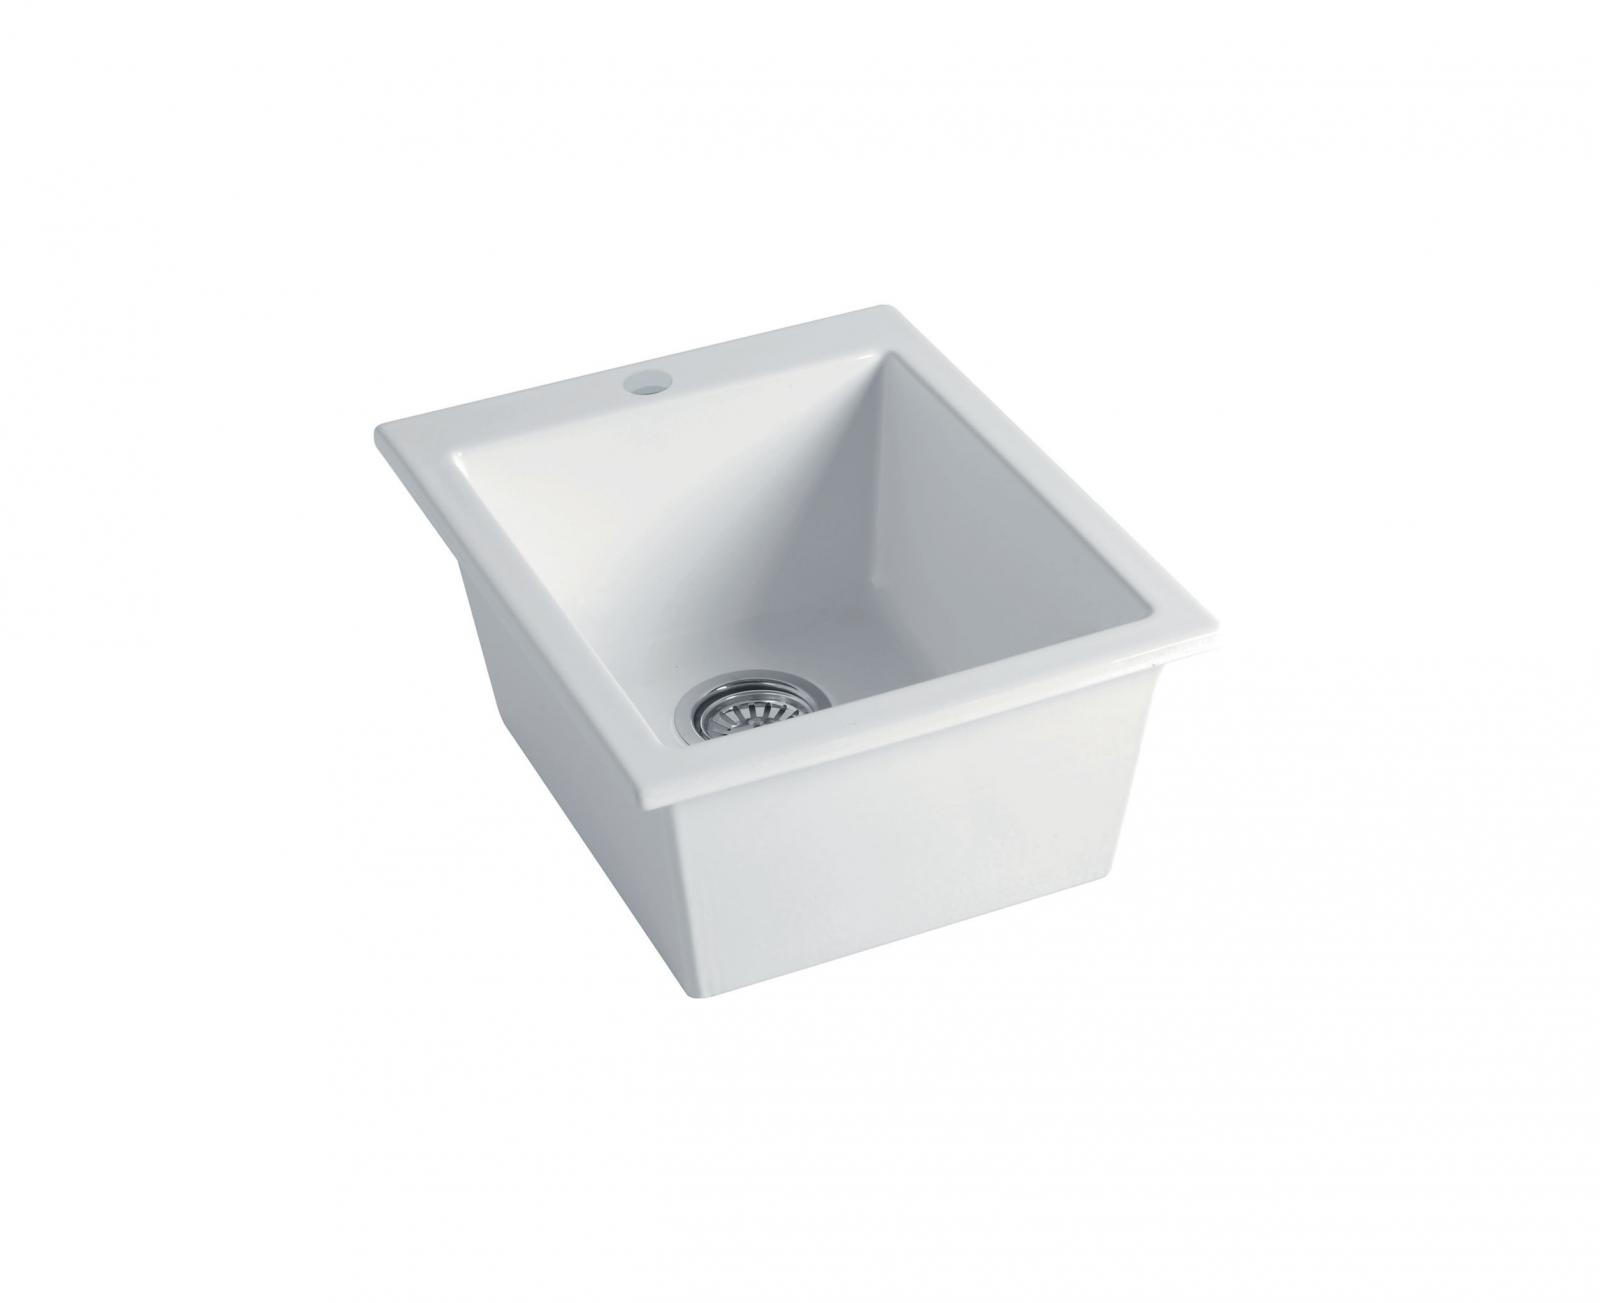 High-quality sink Constance white